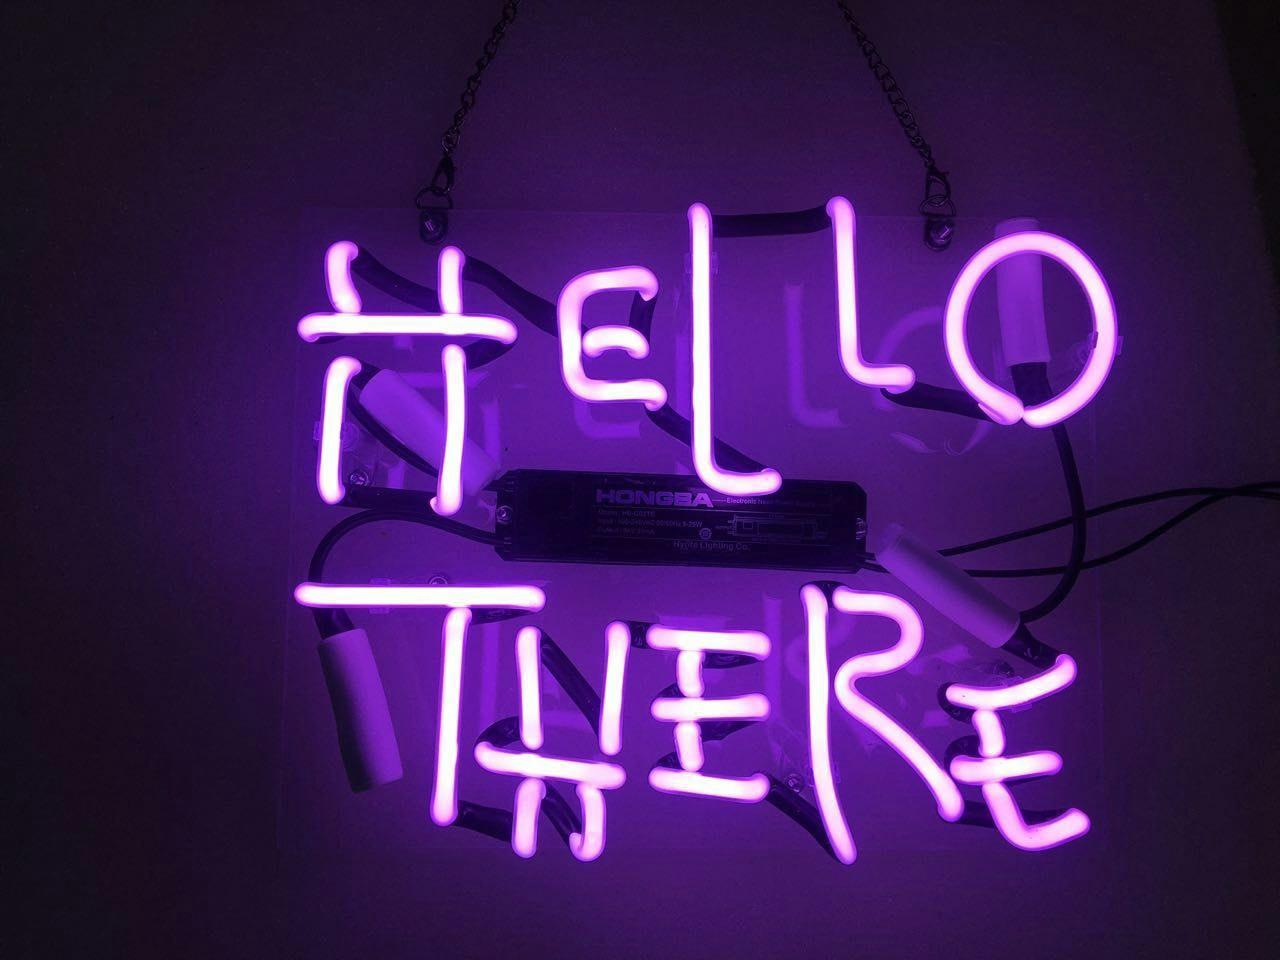 2018 14x12 hello there neon sign light pub store display home 2018 14x12 hello there neon sign light pub store display home night wall lamp decorative artwork from customneon 5846 dhgate aloadofball Image collections